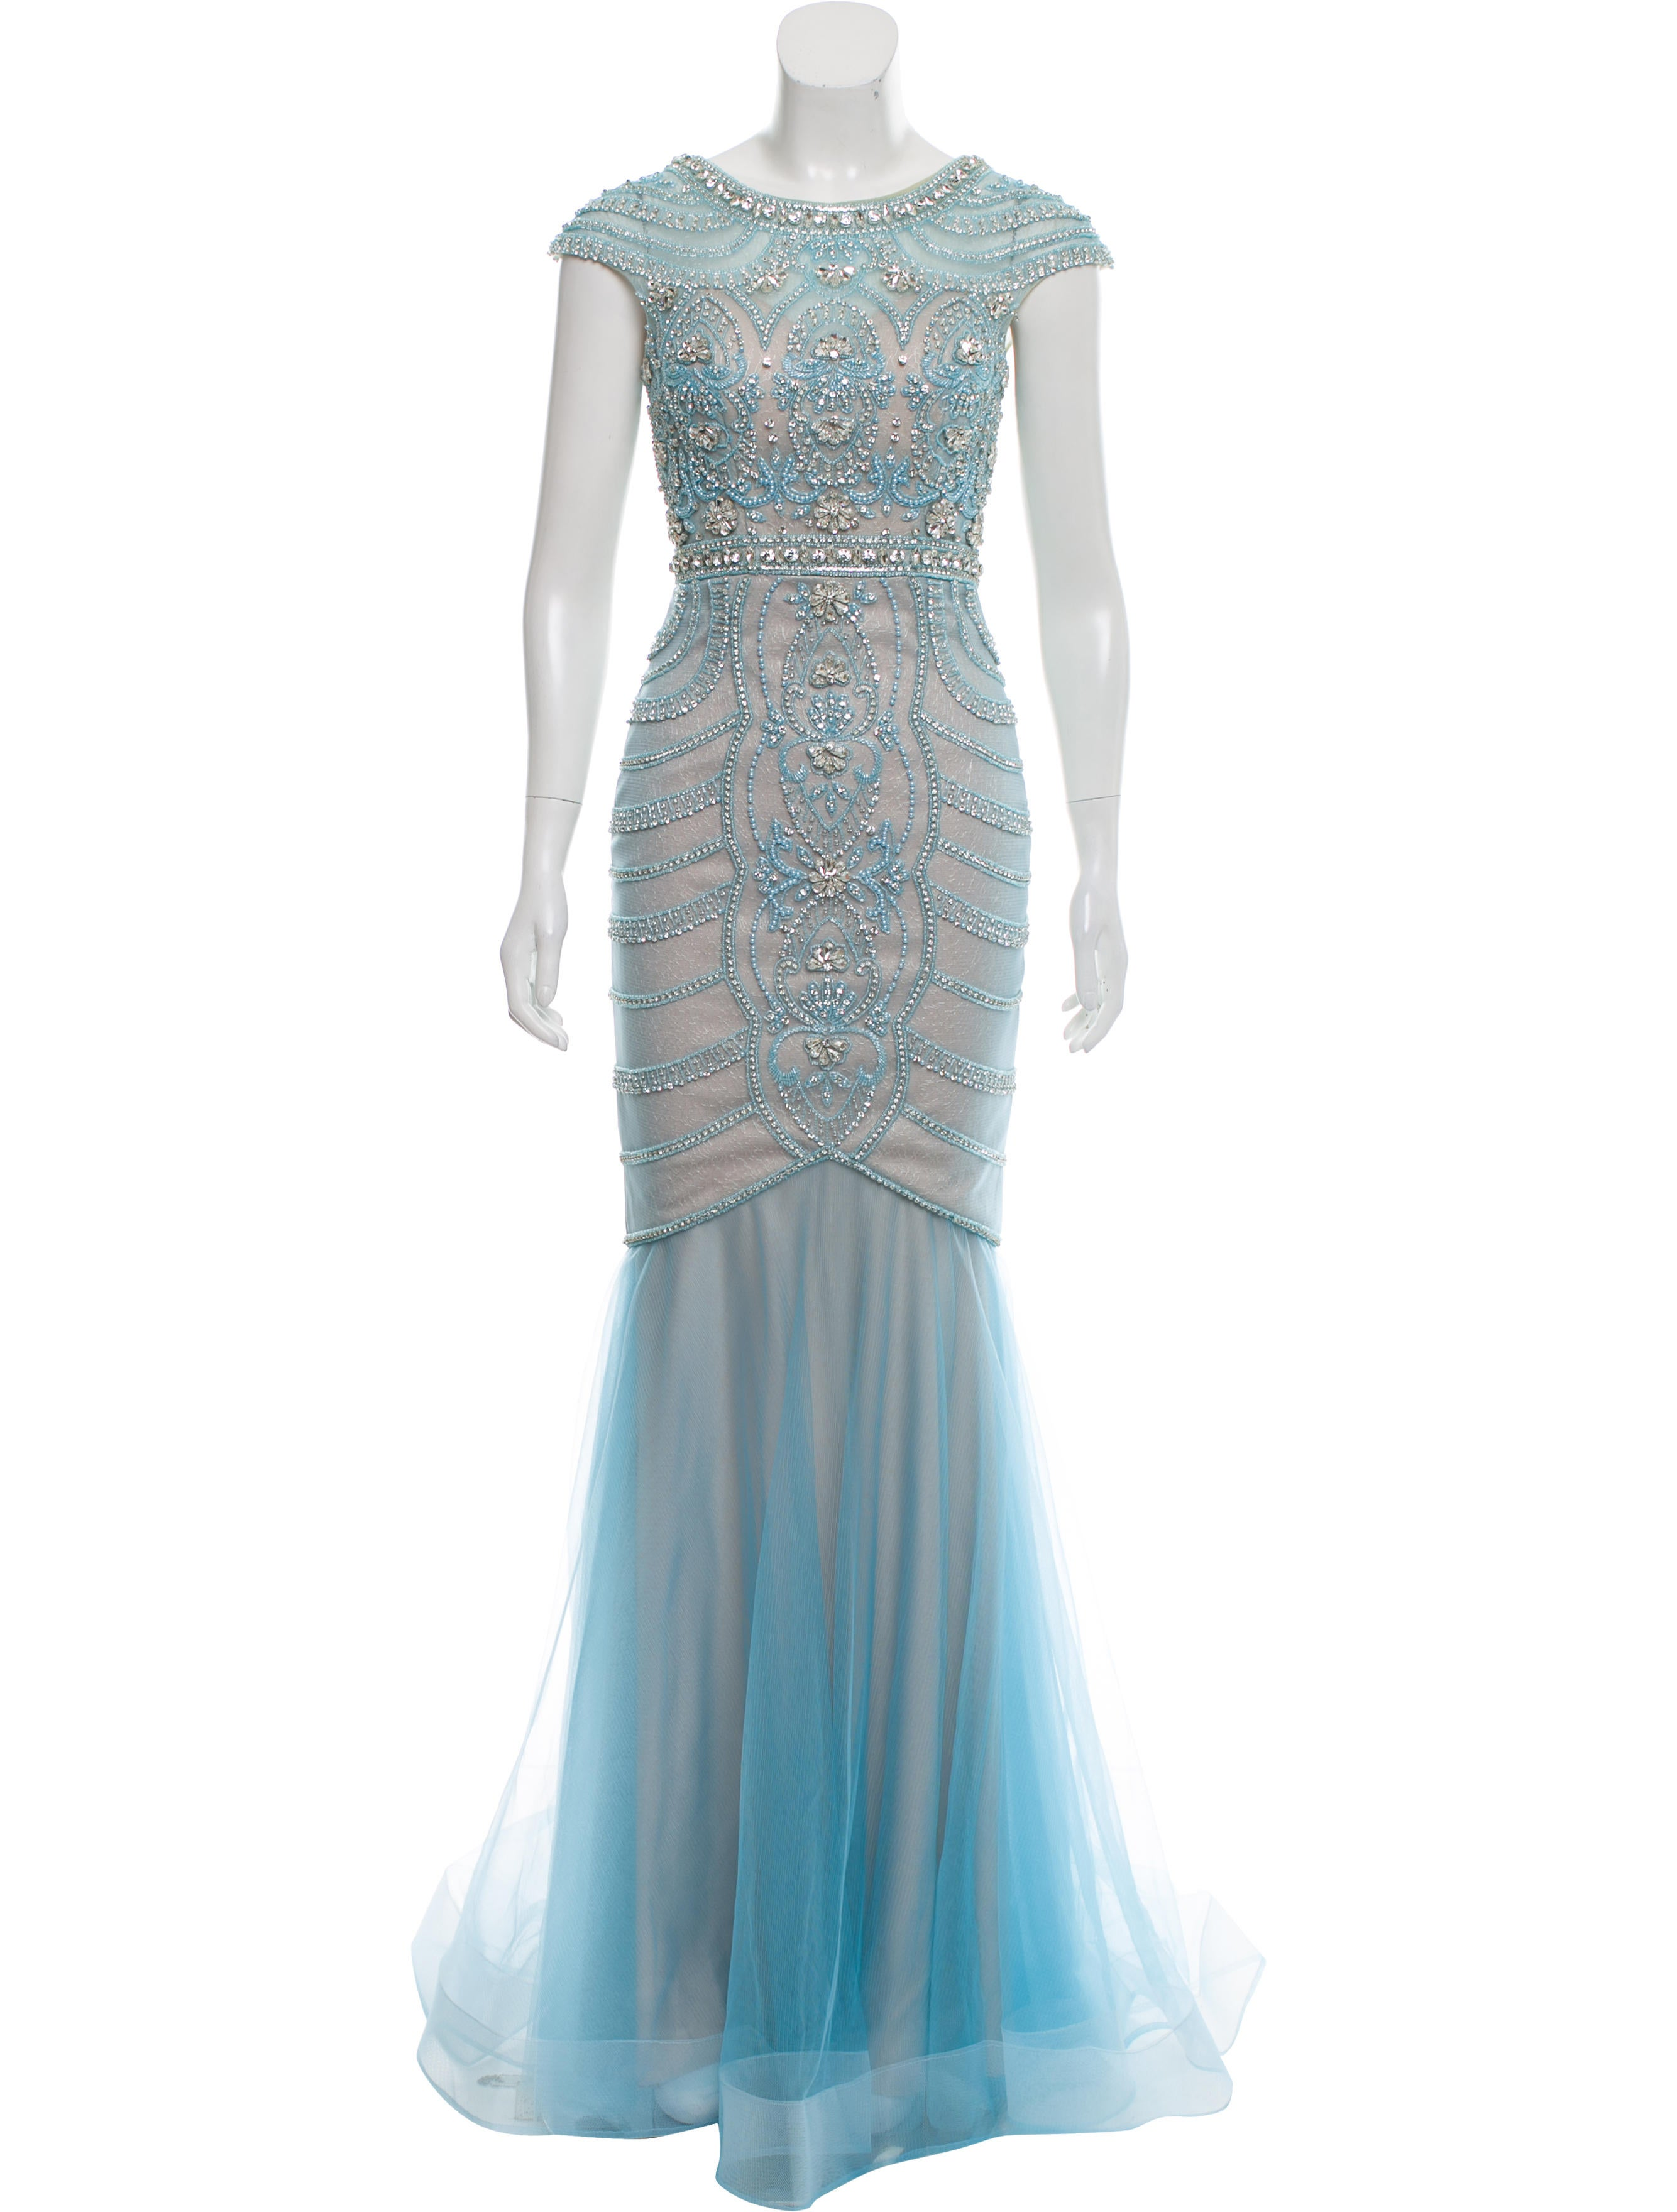 Terani Couture Embellished Cap Sleeve Evening Gown - Clothing ...